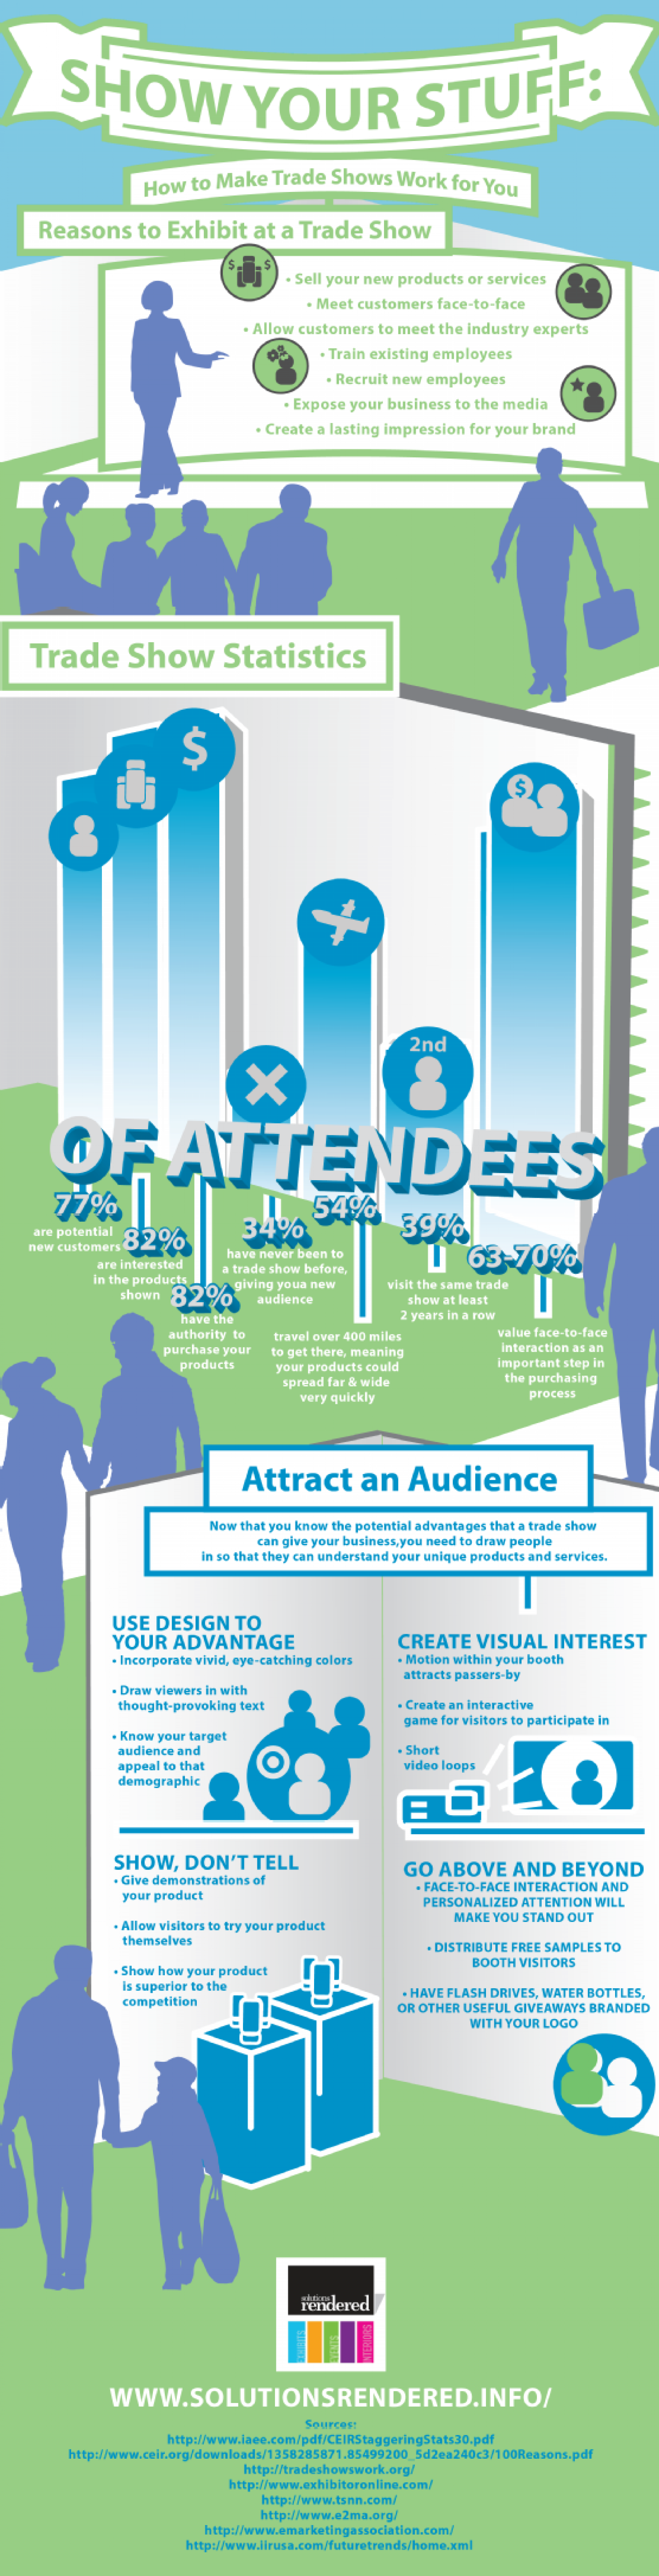 Show Your Stuff: How to Make Trade Shows Work for You  Infographic